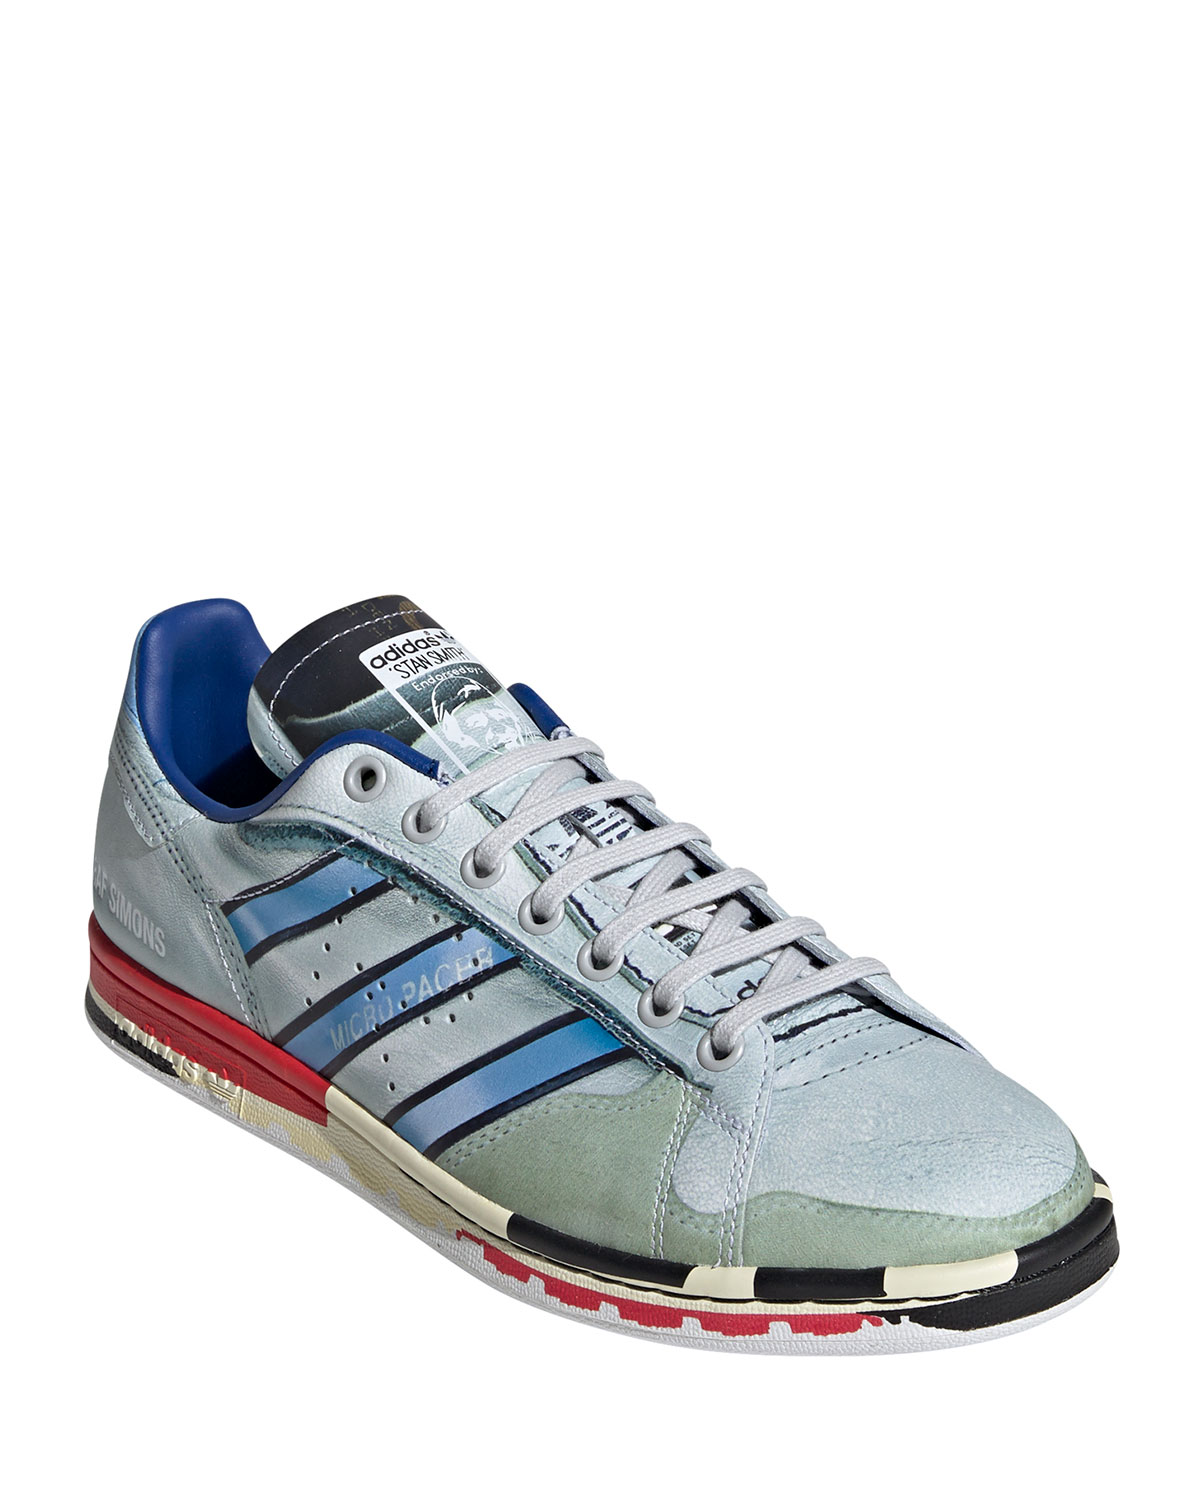 Adidas By Raf Simons Sneakers MEN'S MICRO STAN SMITH PRINTED LEATHER SNEAKERS